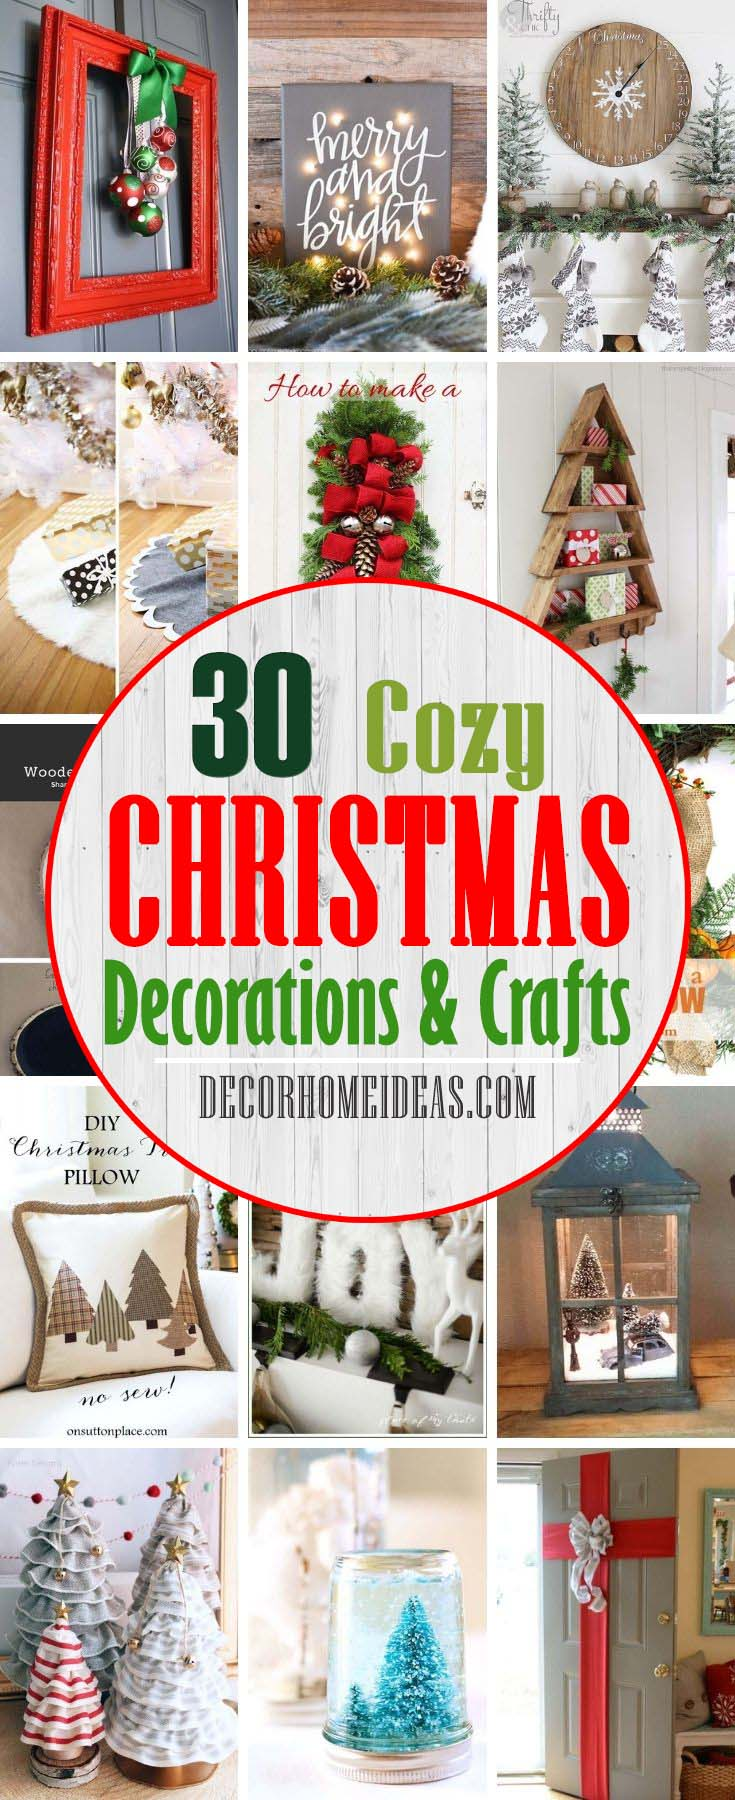 Best Christmas Decorations And Crafts. From easy-to-make Christmas ornaments to simple Christmas table decorations and even show-stopping DIY holiday wreaths, there's something here for every taste and skill set. #decorhomeideas